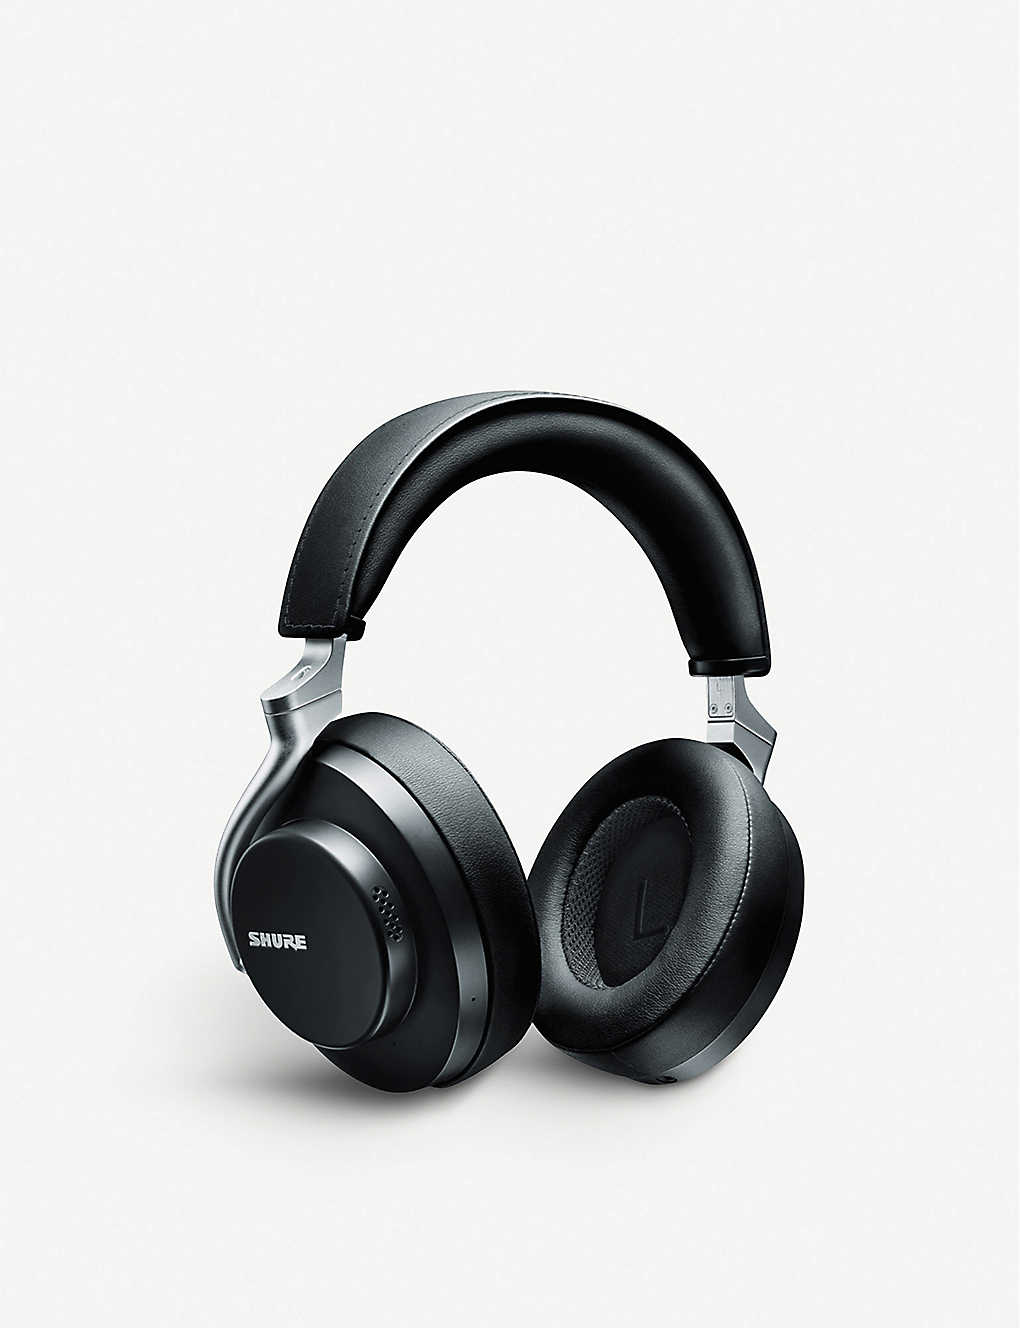 SHURE: AUDIO 50 Wireless Noise Cancelling